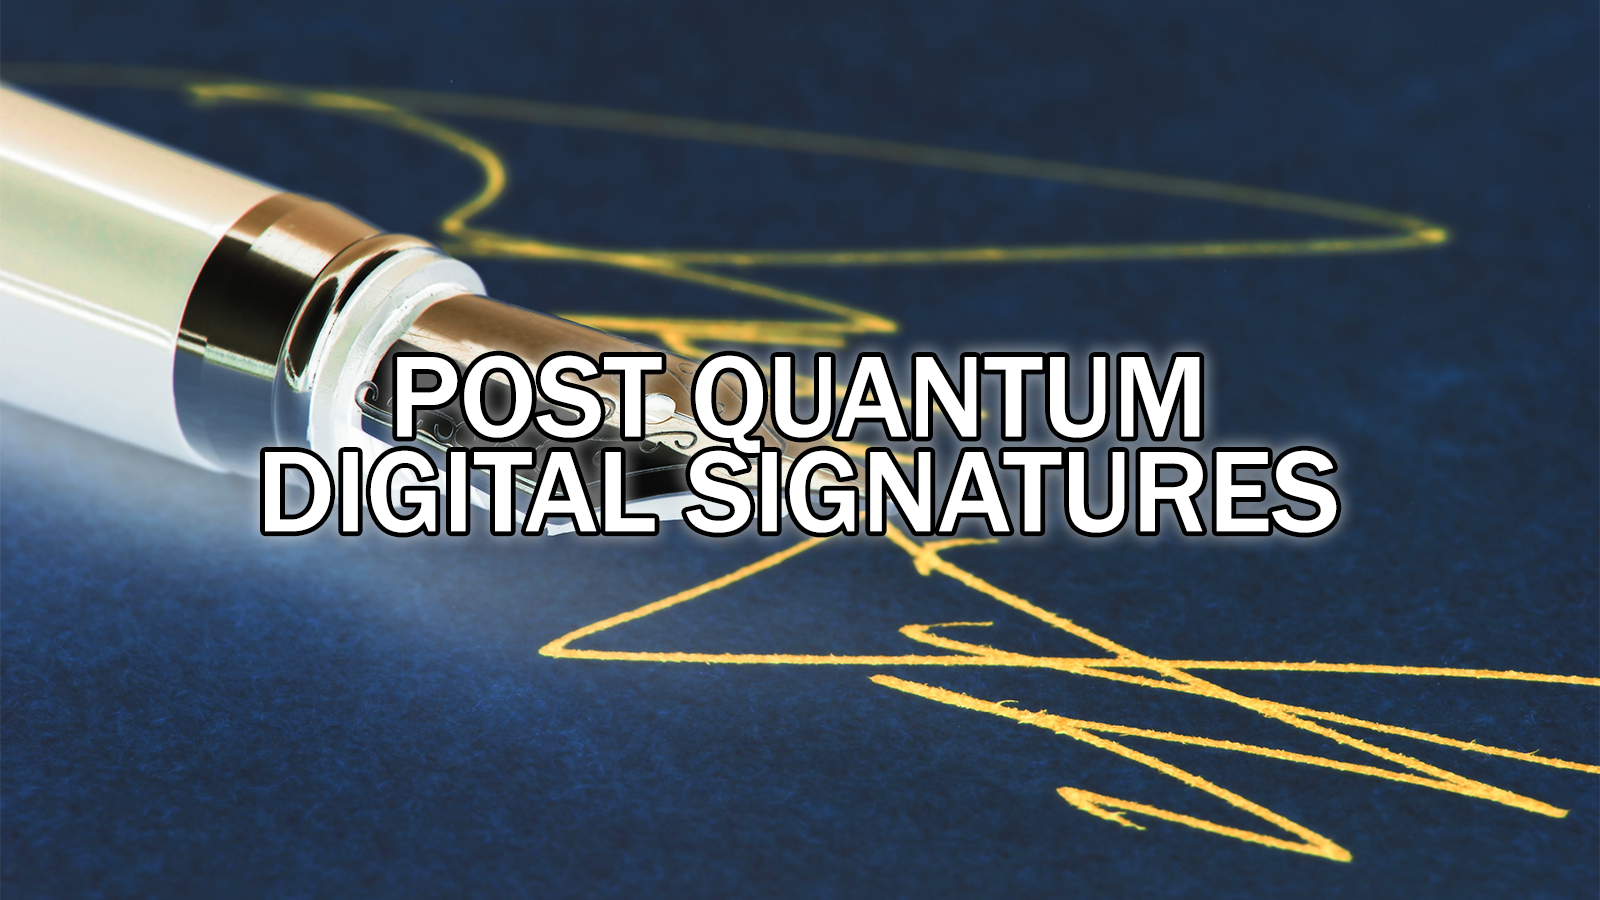 NIST Round 2 and Post-Quantum Cryptography – The New Digital Signature Algorithms